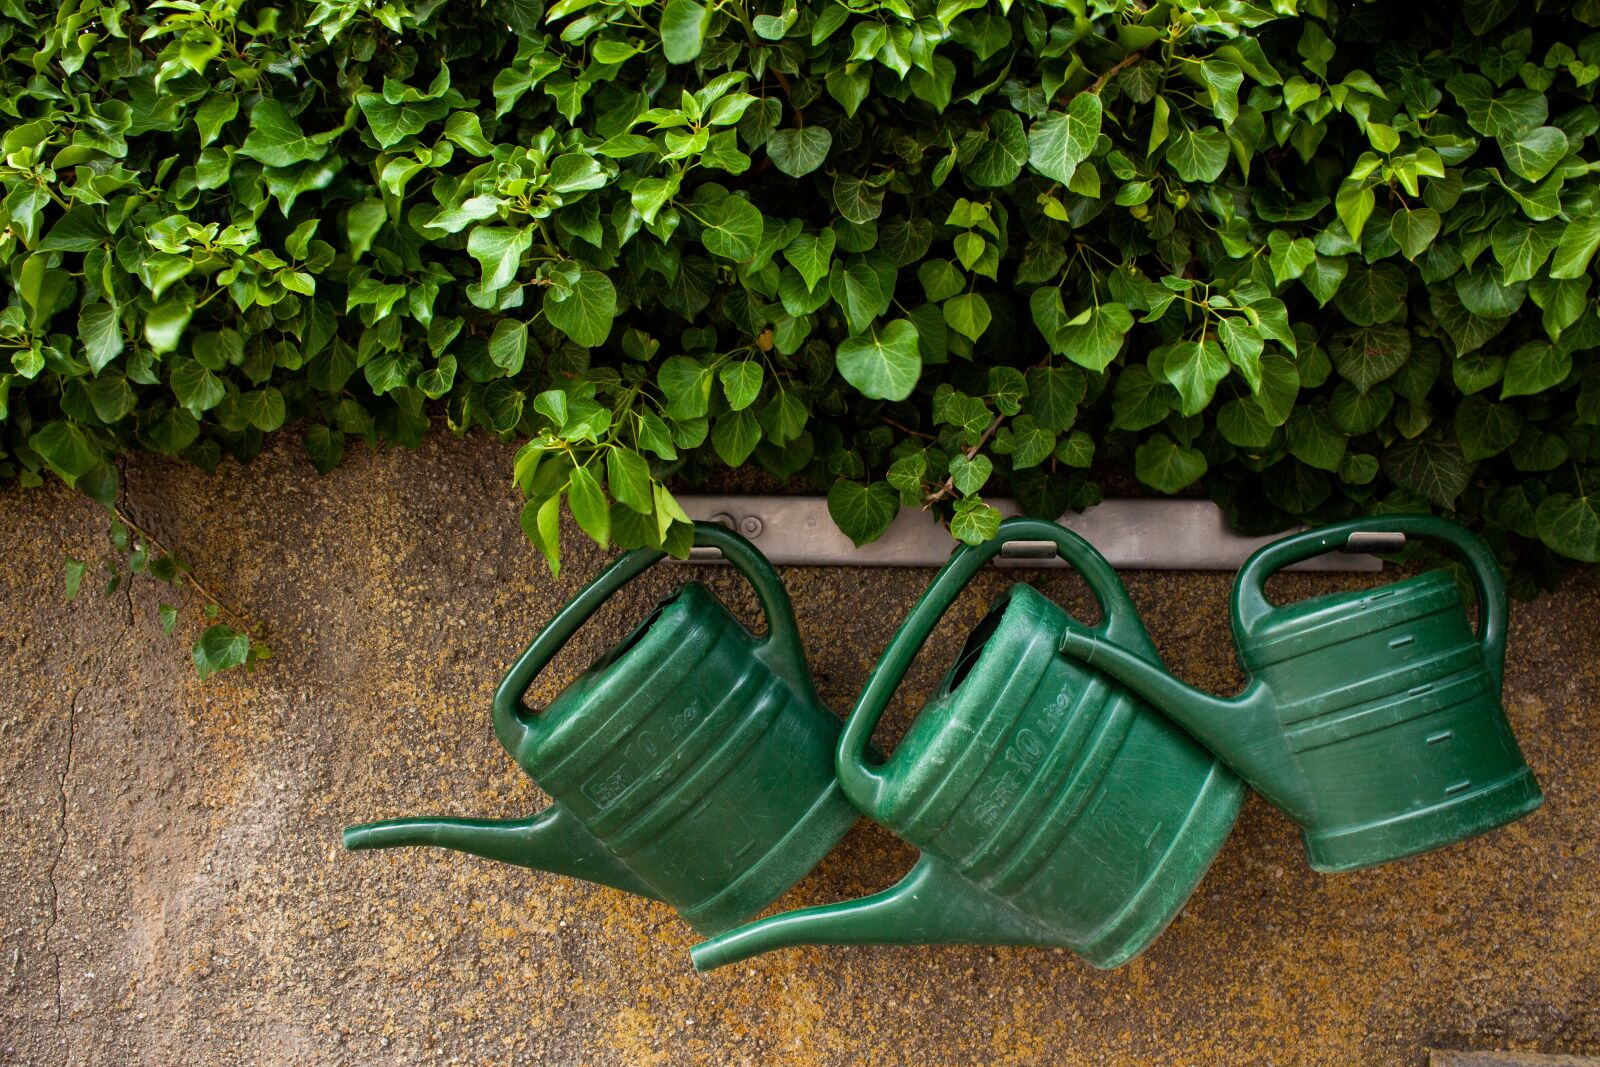 watering can, garden, casting